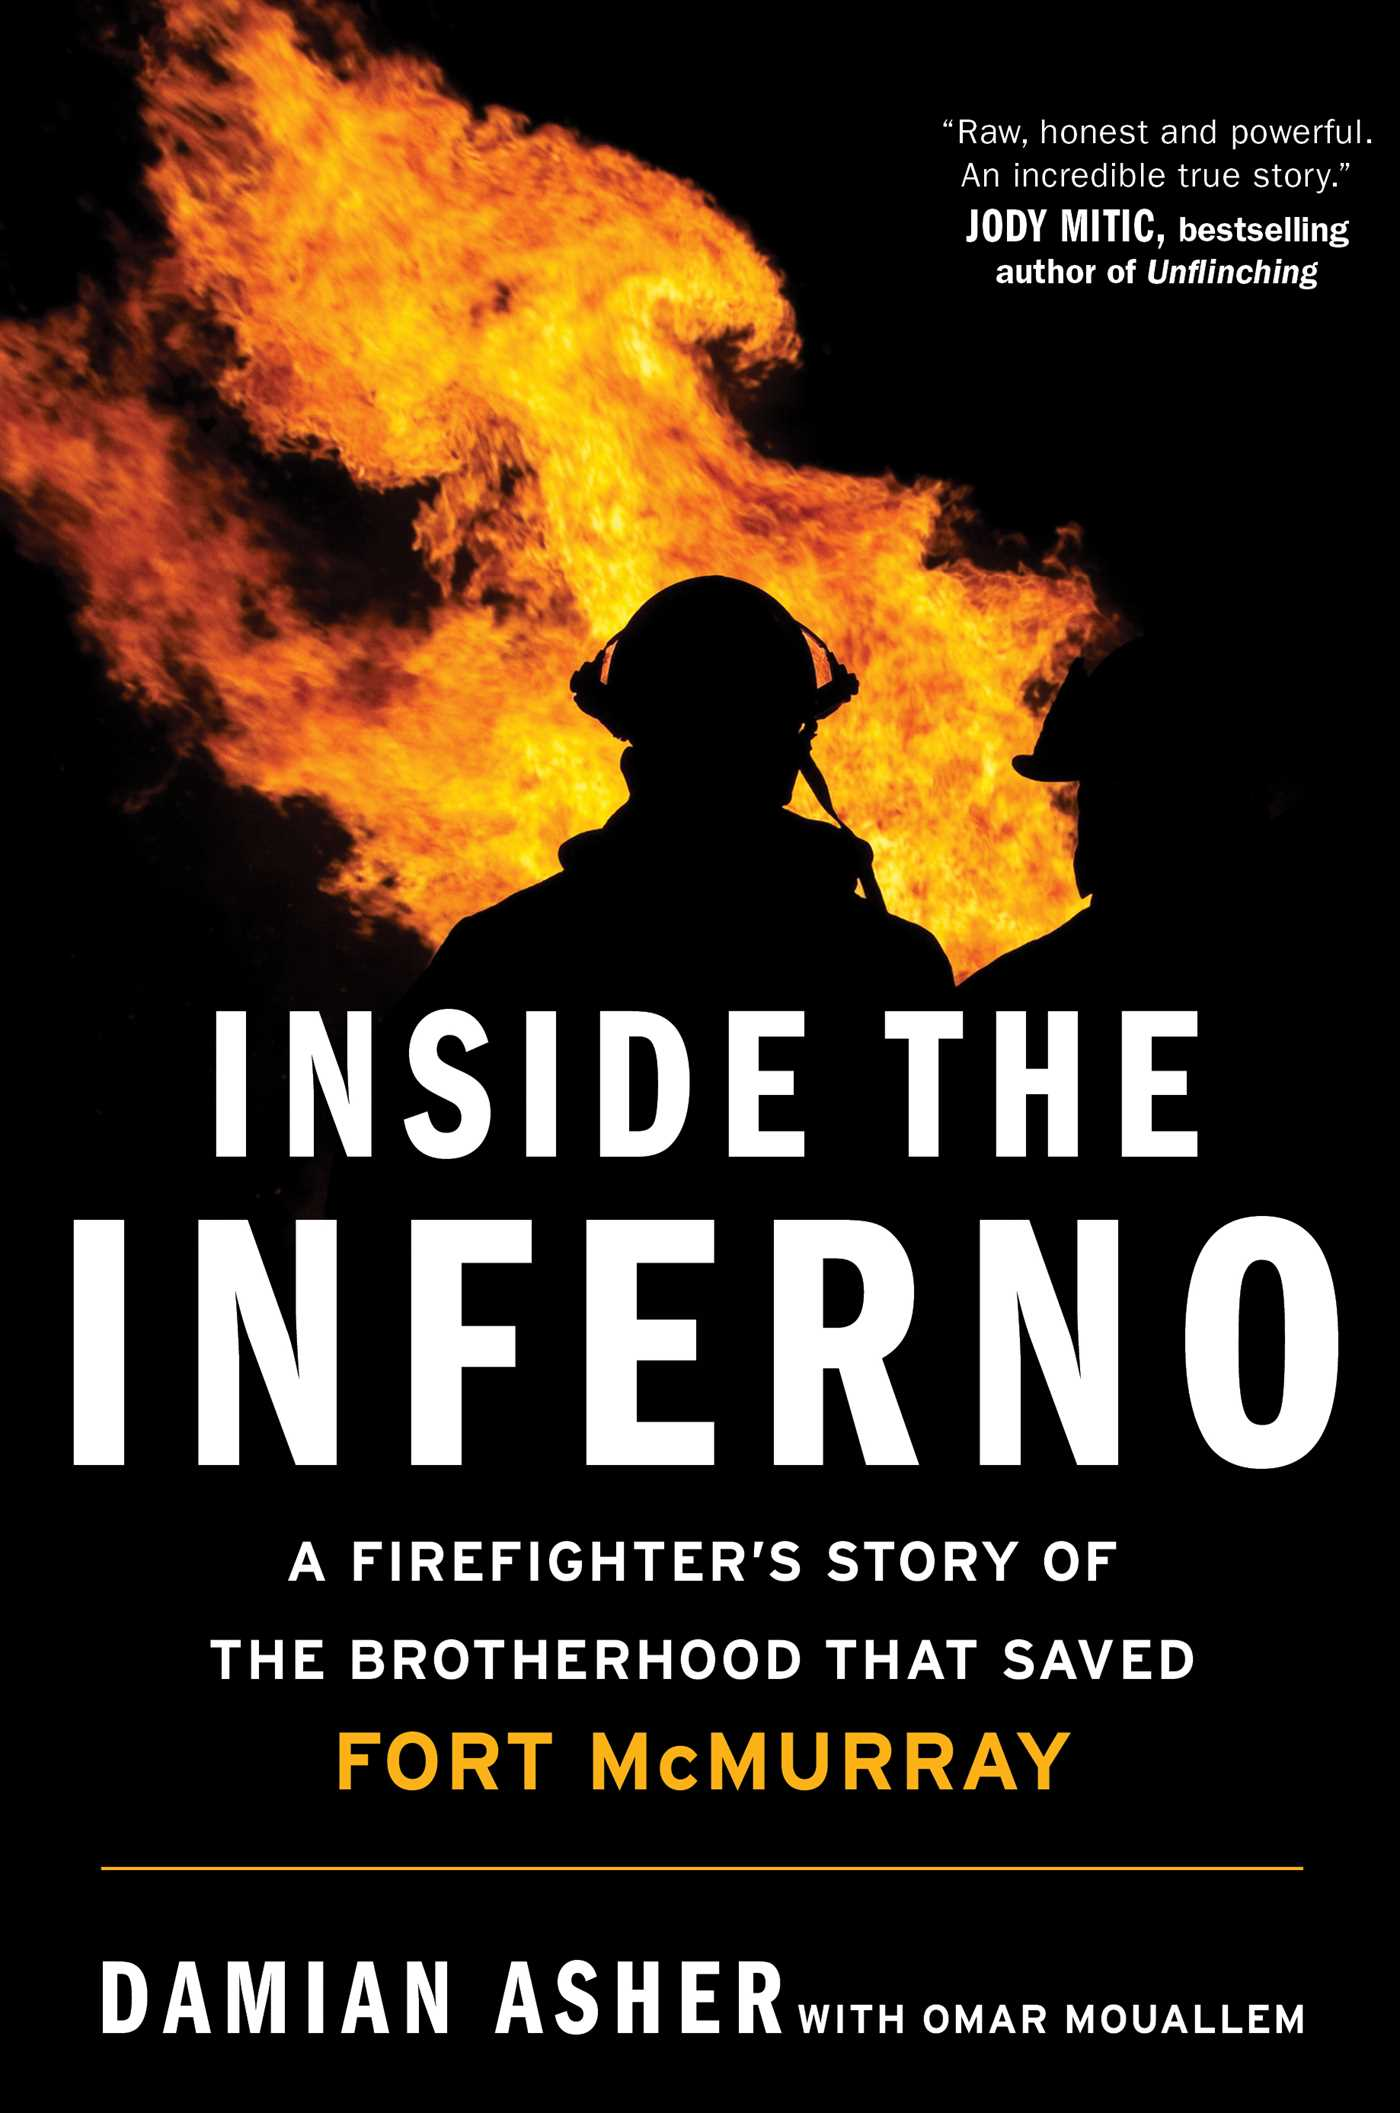 Inside the Inferno by Damian Asher and Omar Mouallem